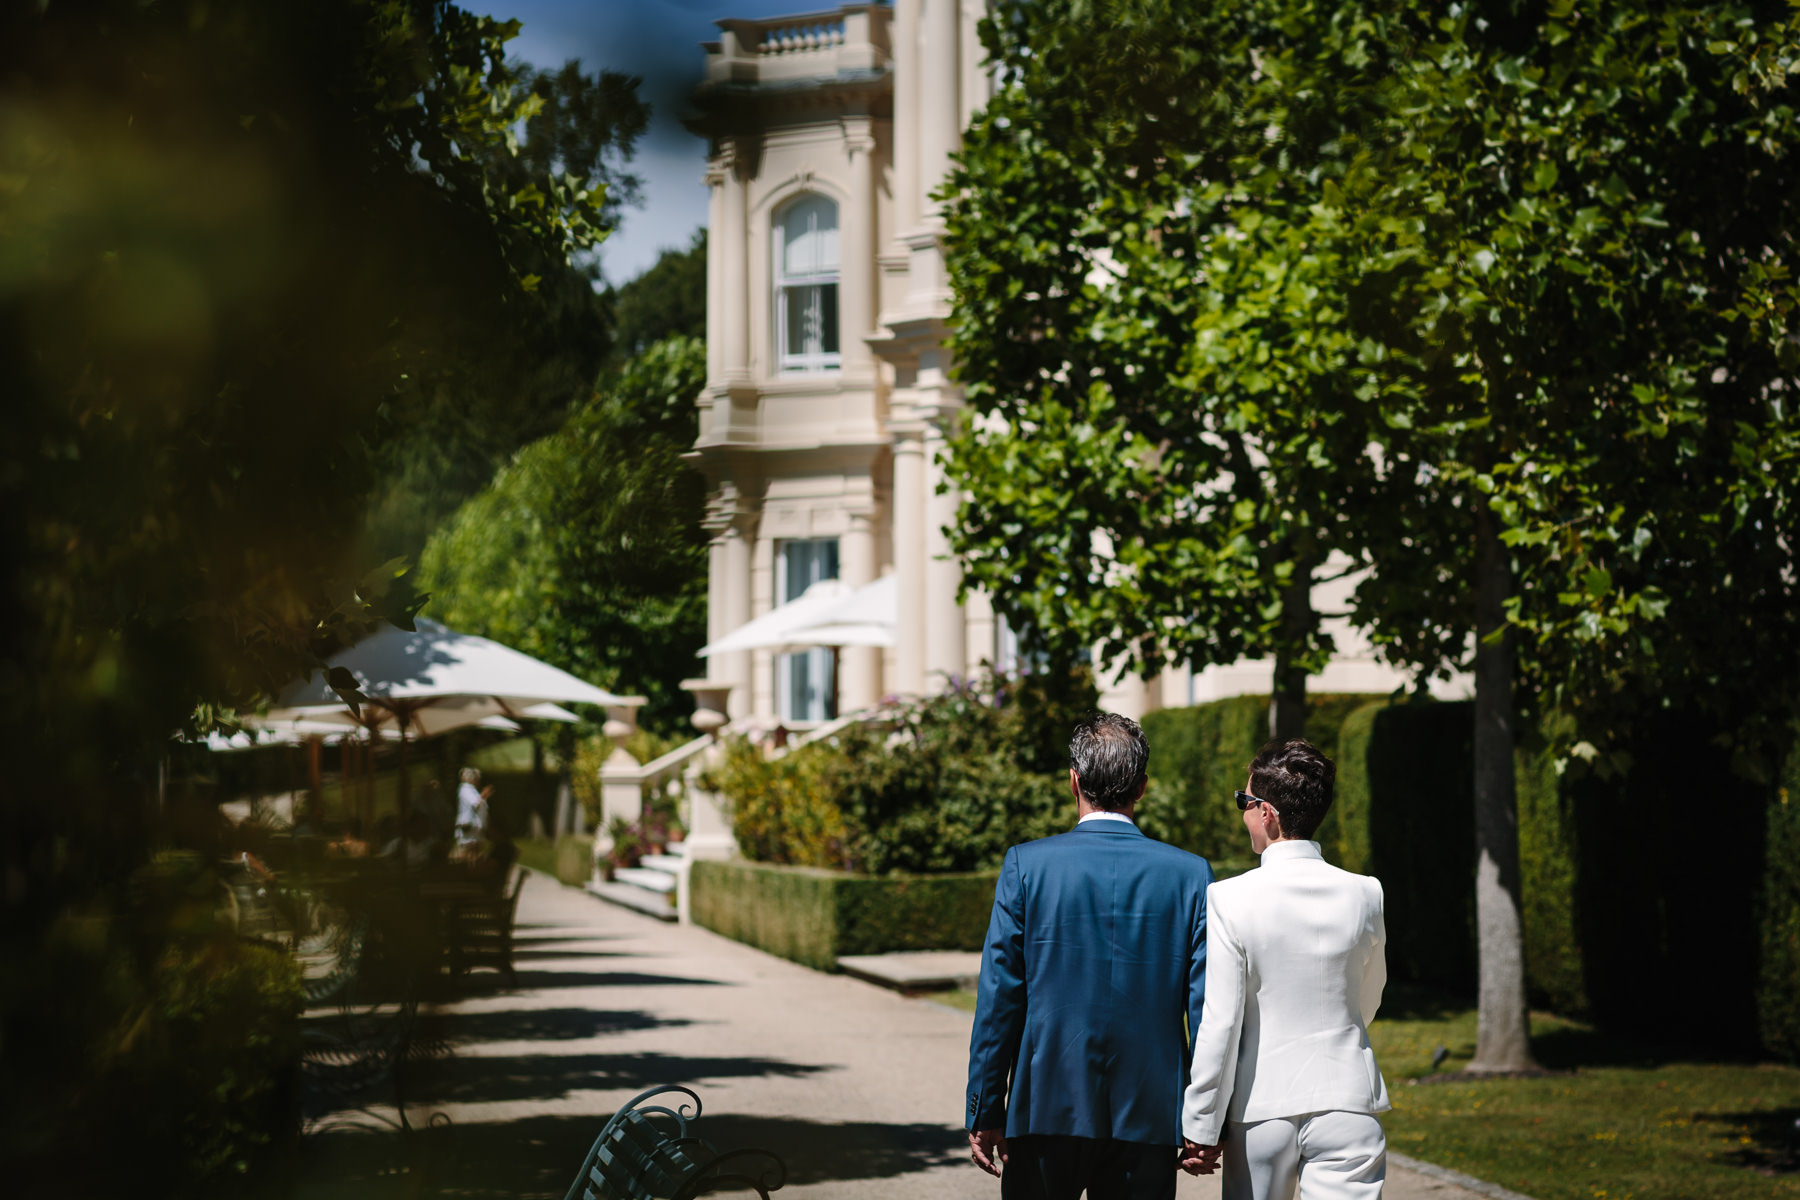 bride groom walking rear view colour image beaverbrook garden natural authentic documentary wedding photo bride groom couple beaverbrook surrey hills leatherhead register office wedding photographer